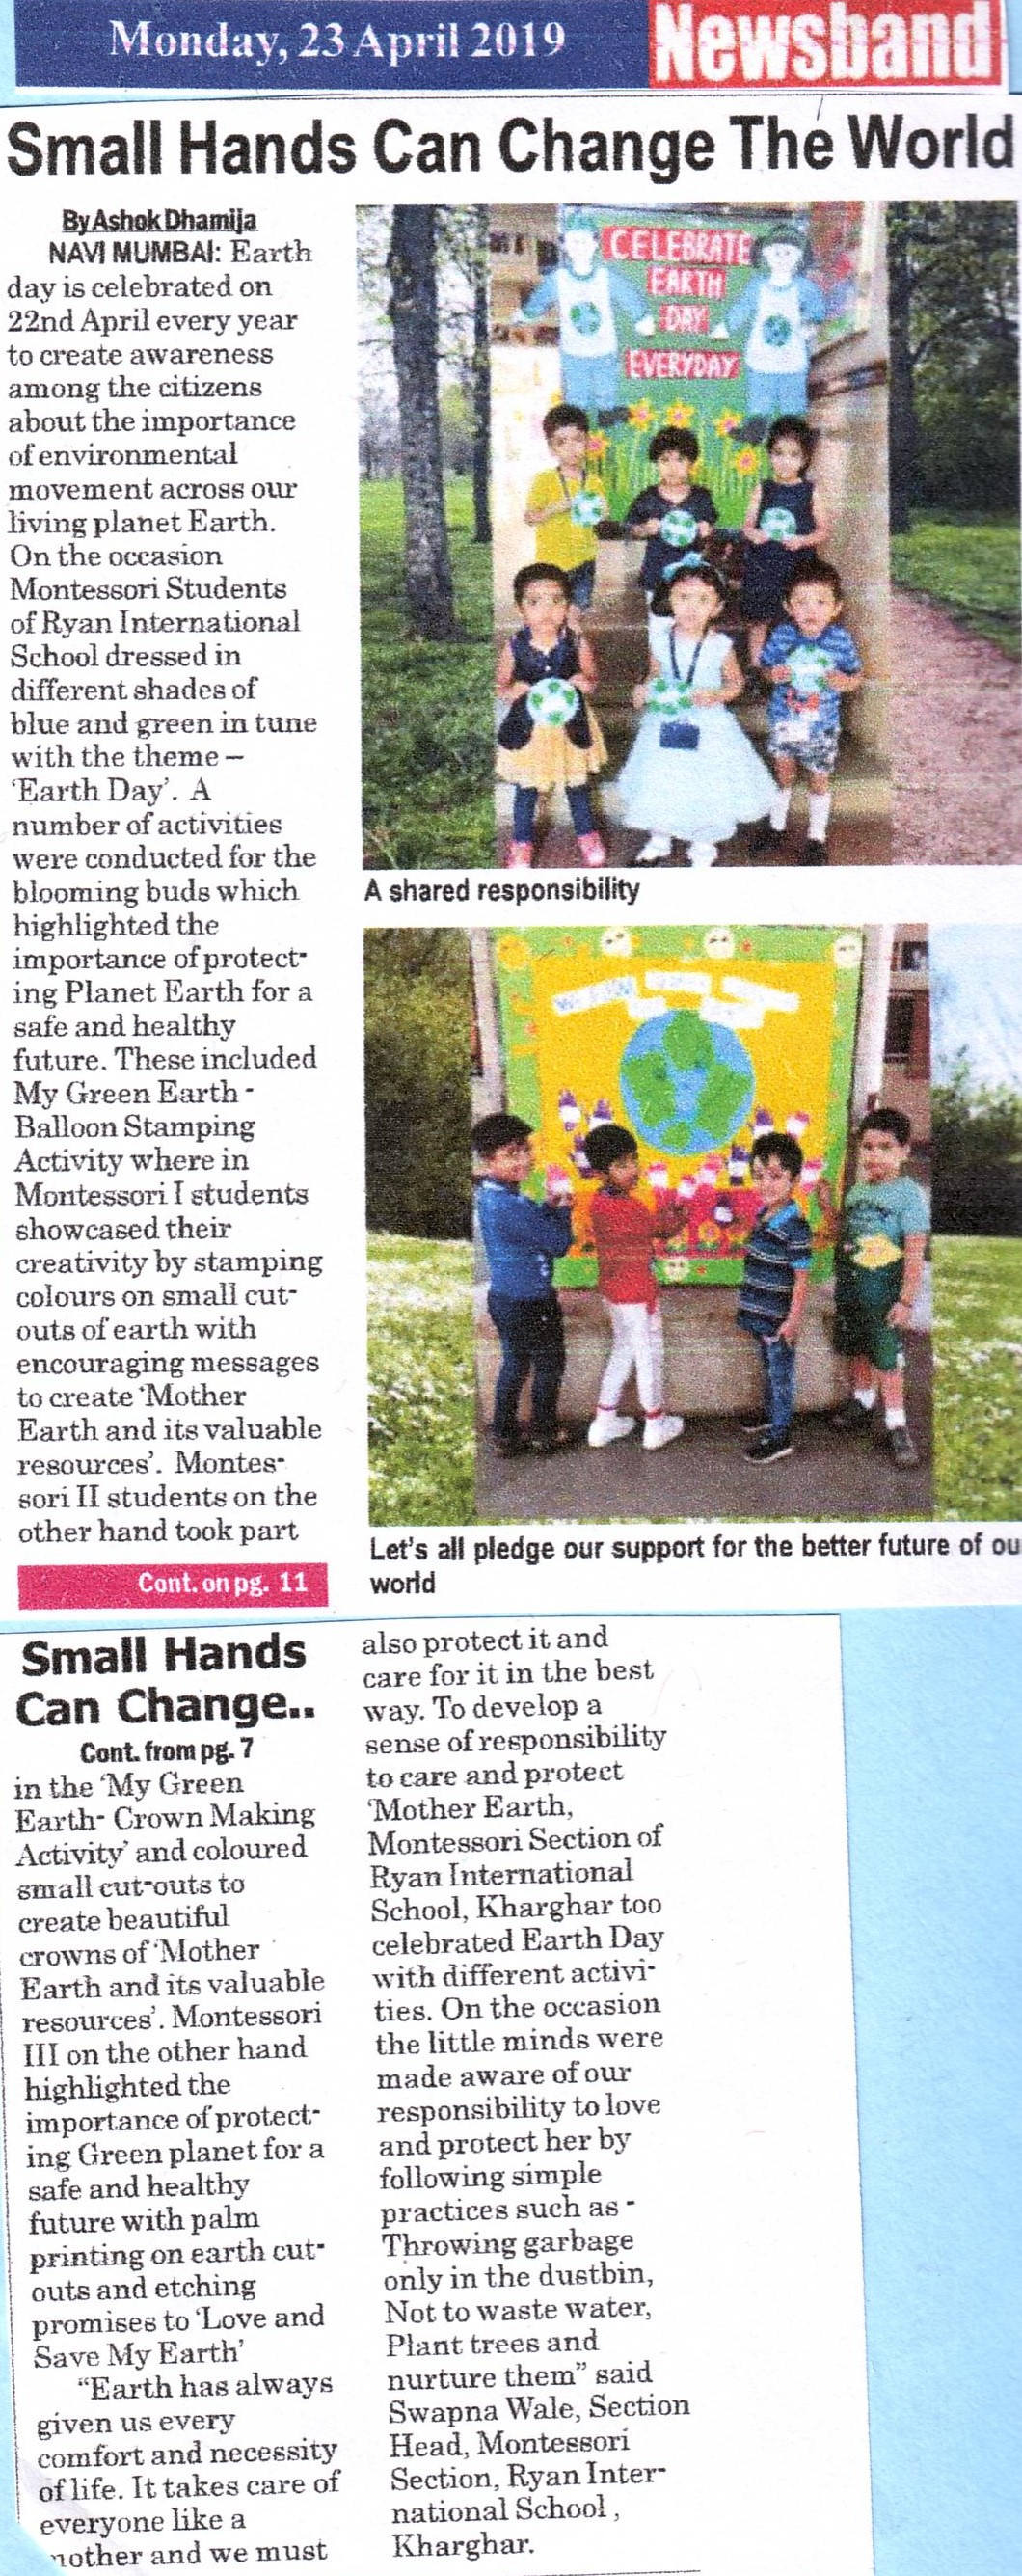 Small hands can change the world was mentioned in Newsband - Ryan International School, Kharghar - Ryan Group